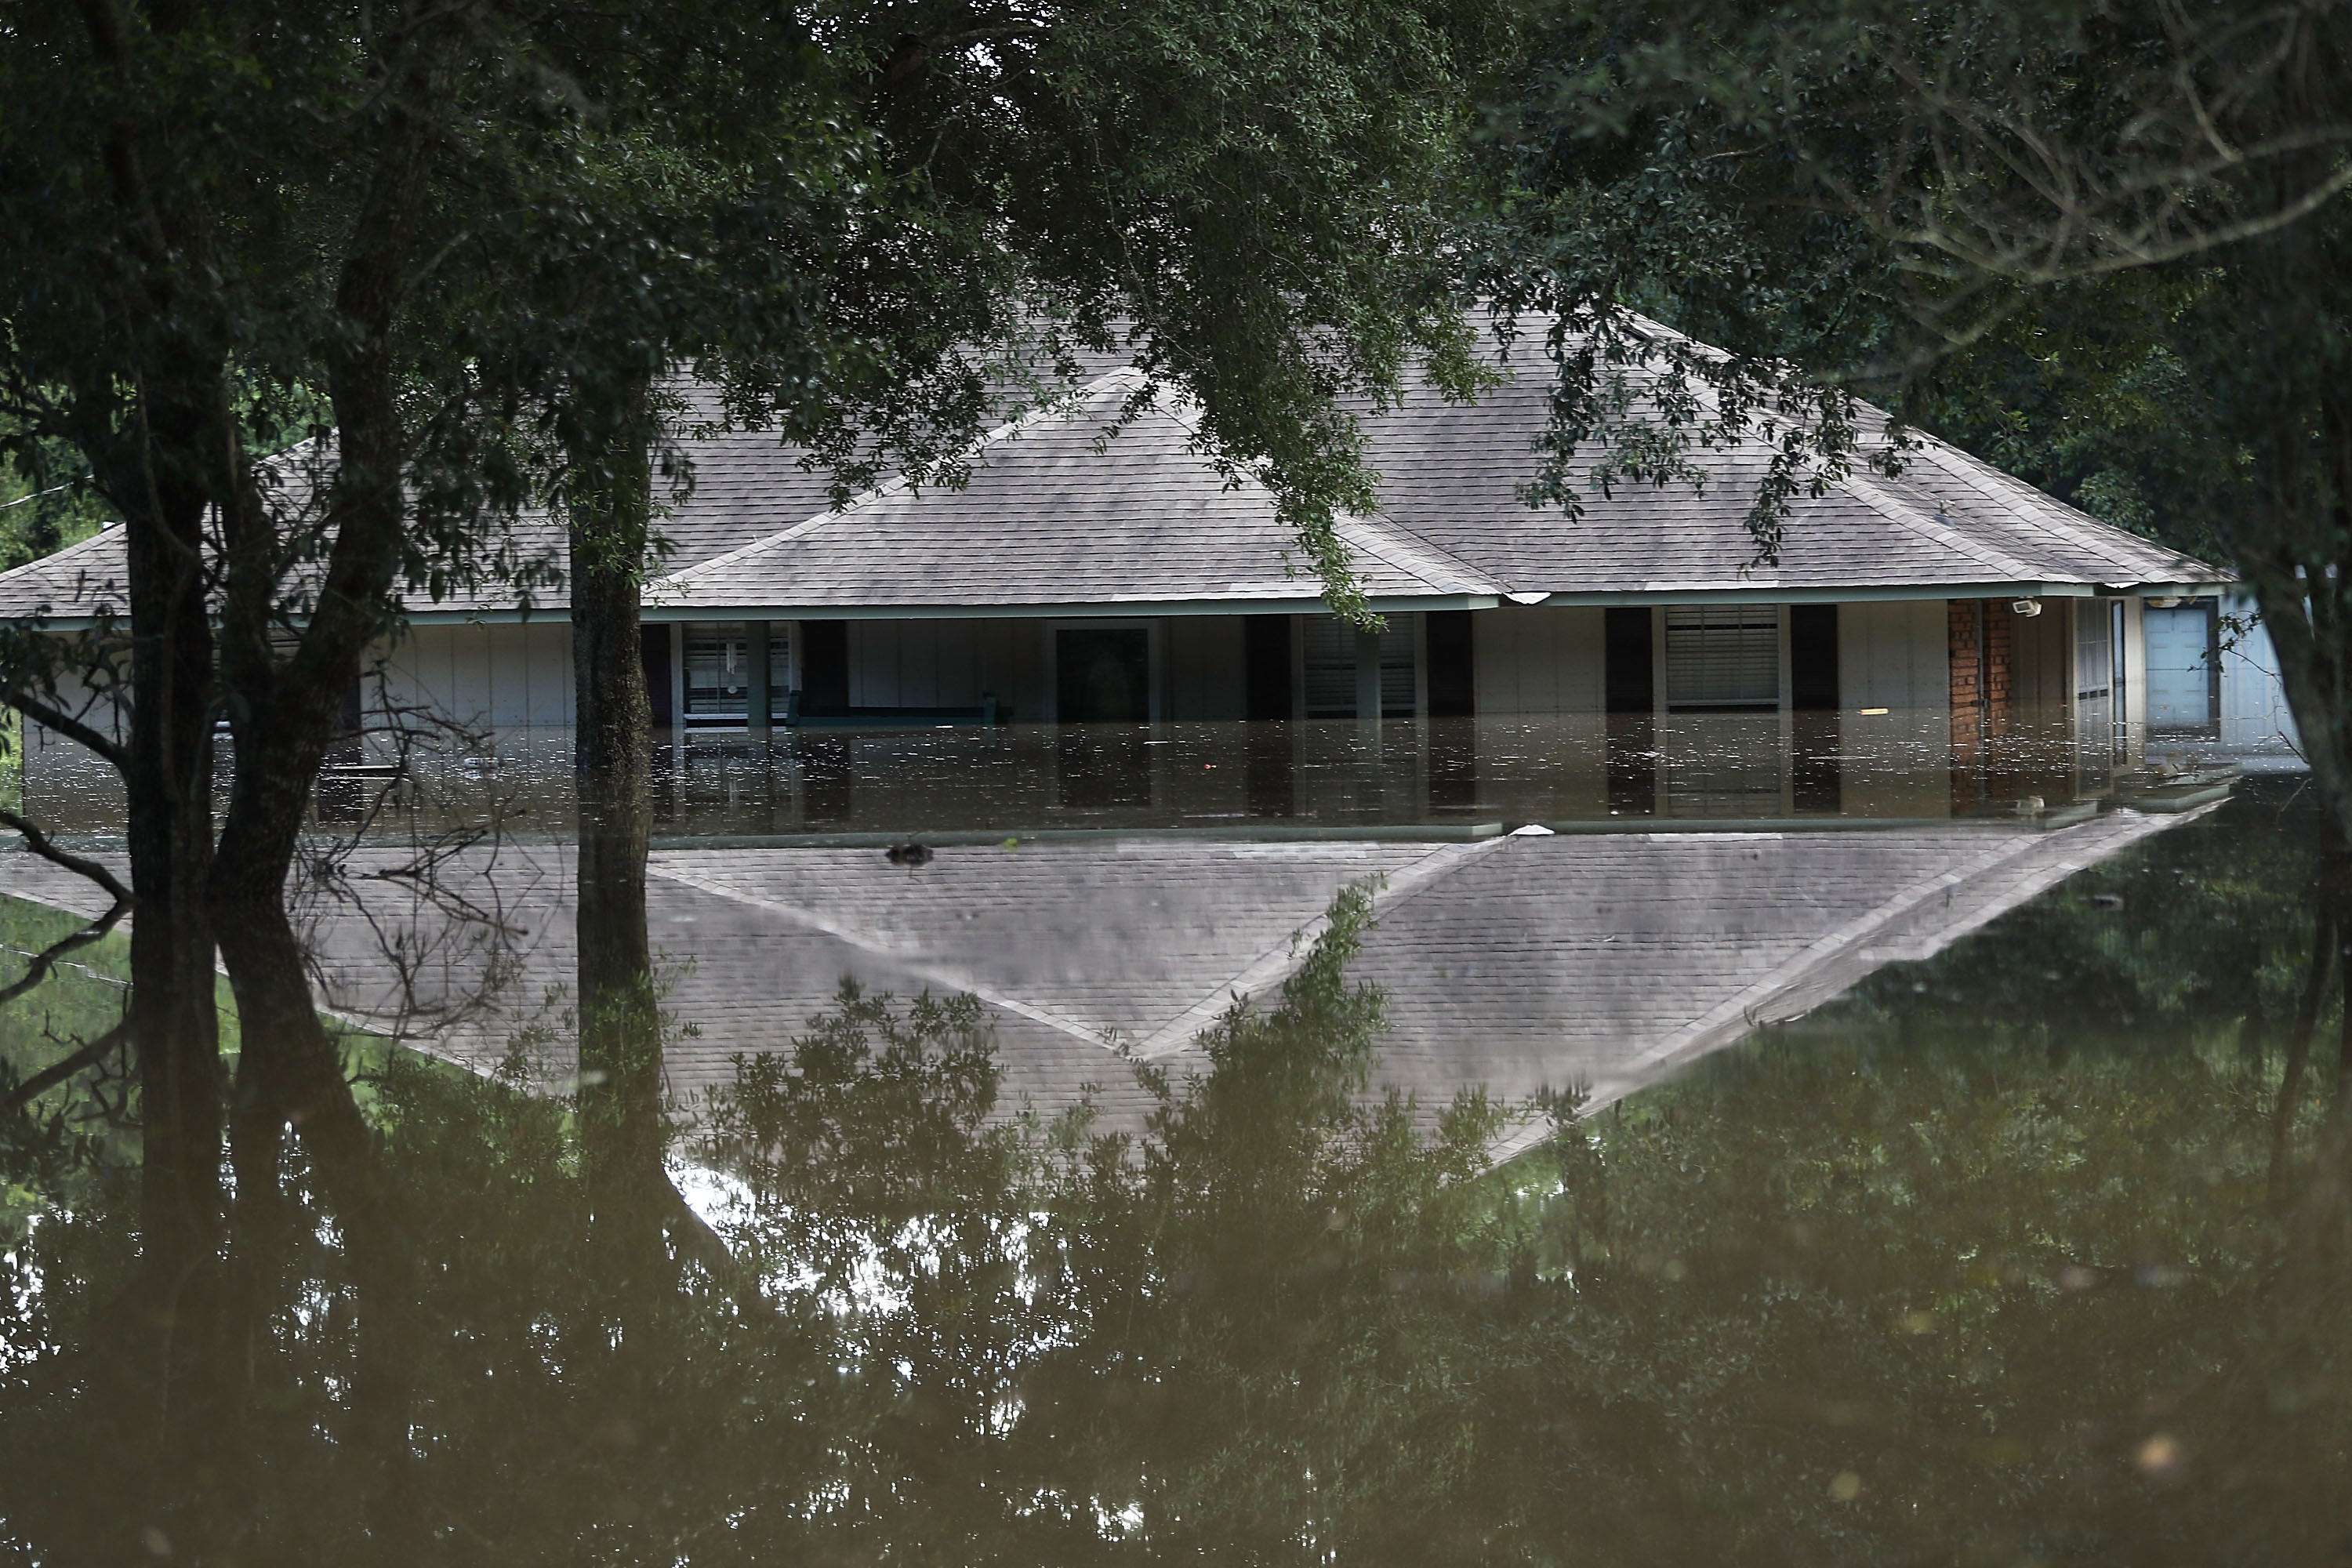 A flooded home is seen on Aug. 15, 2016 in Baton Rouge, Louisiana.